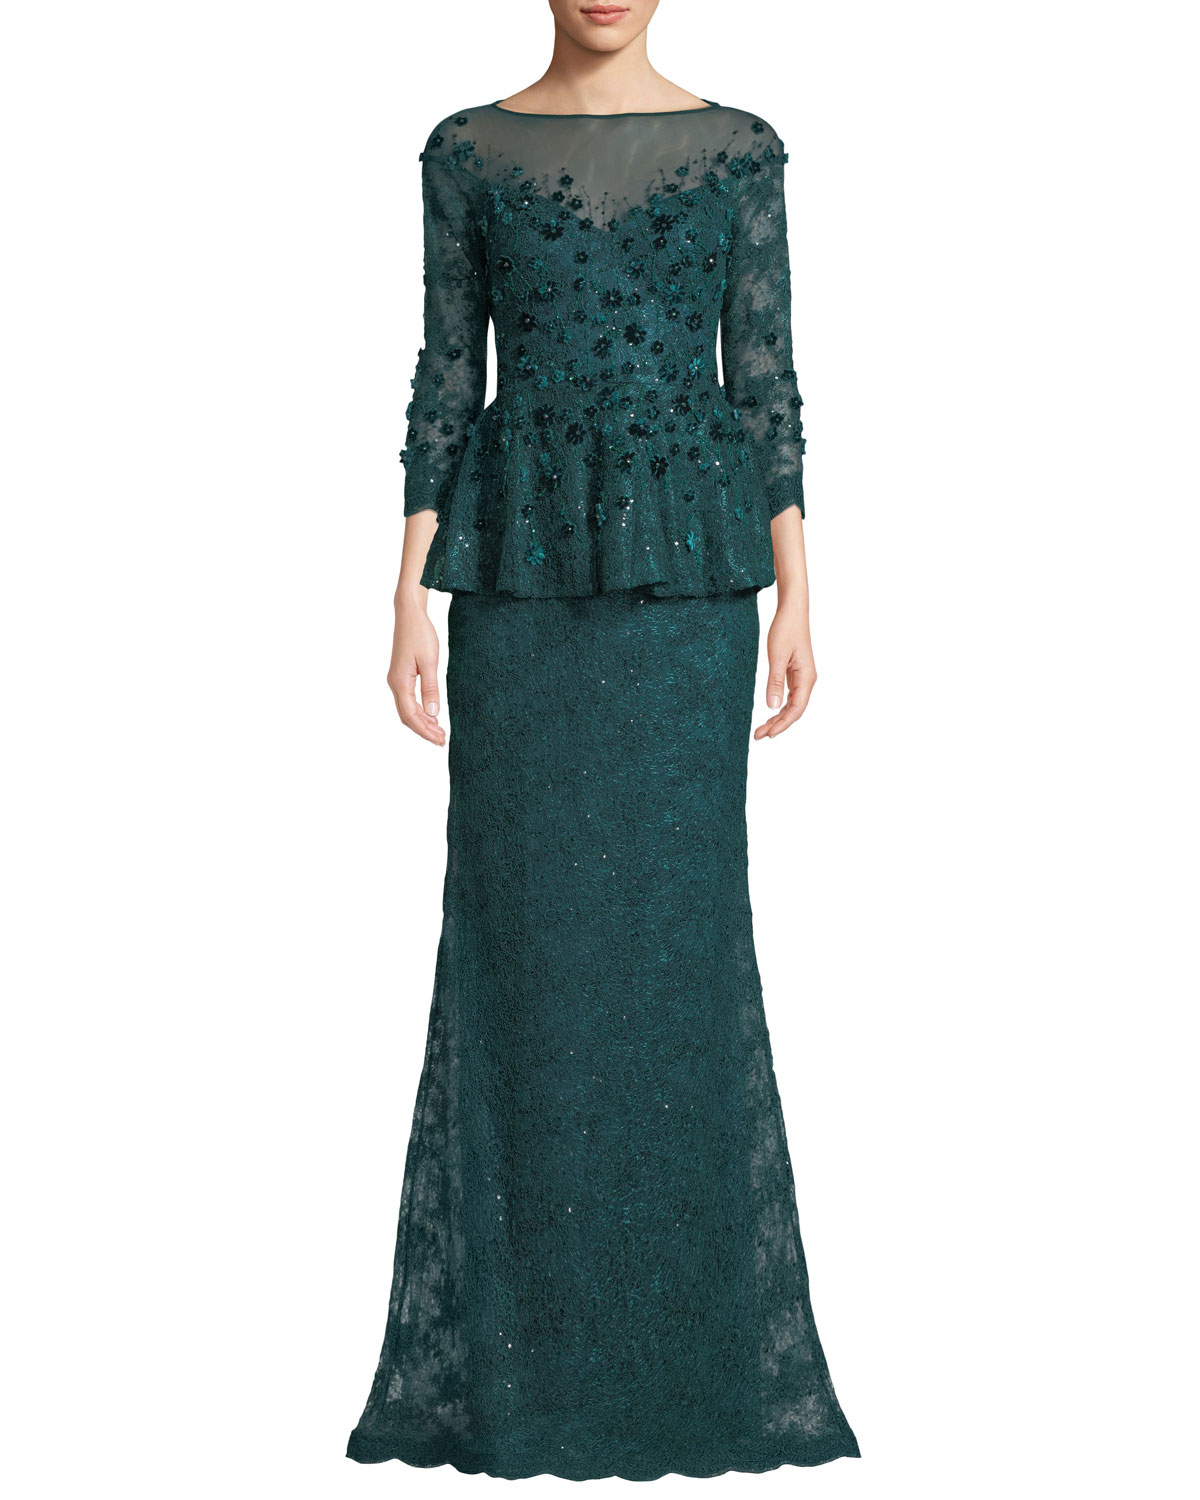 Velvet Flower & Lace Peplum Gown